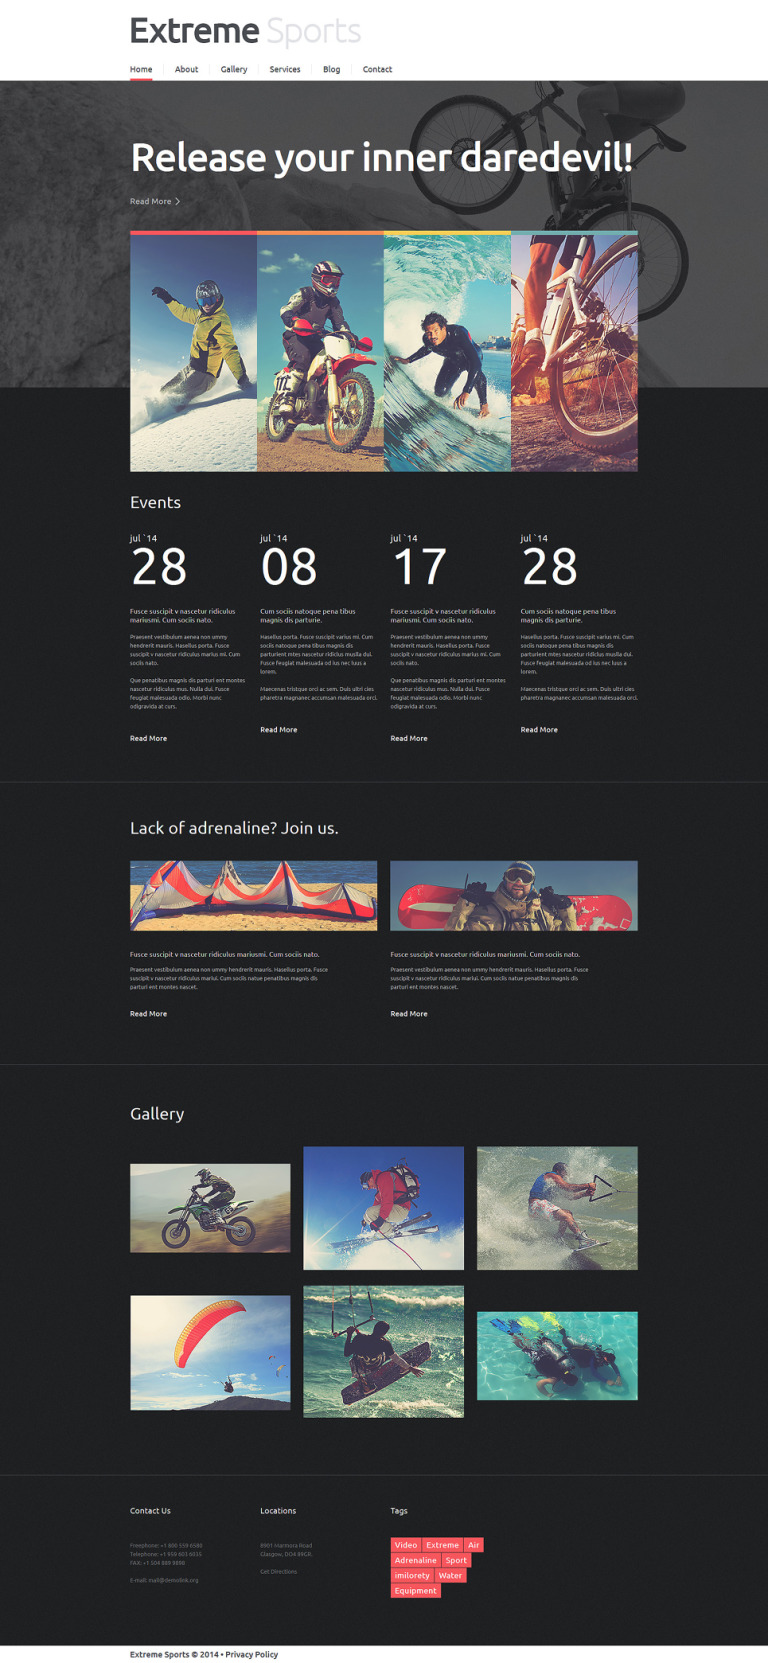 Adrenaline Rush Club Joomla Template New Screenshots BIG